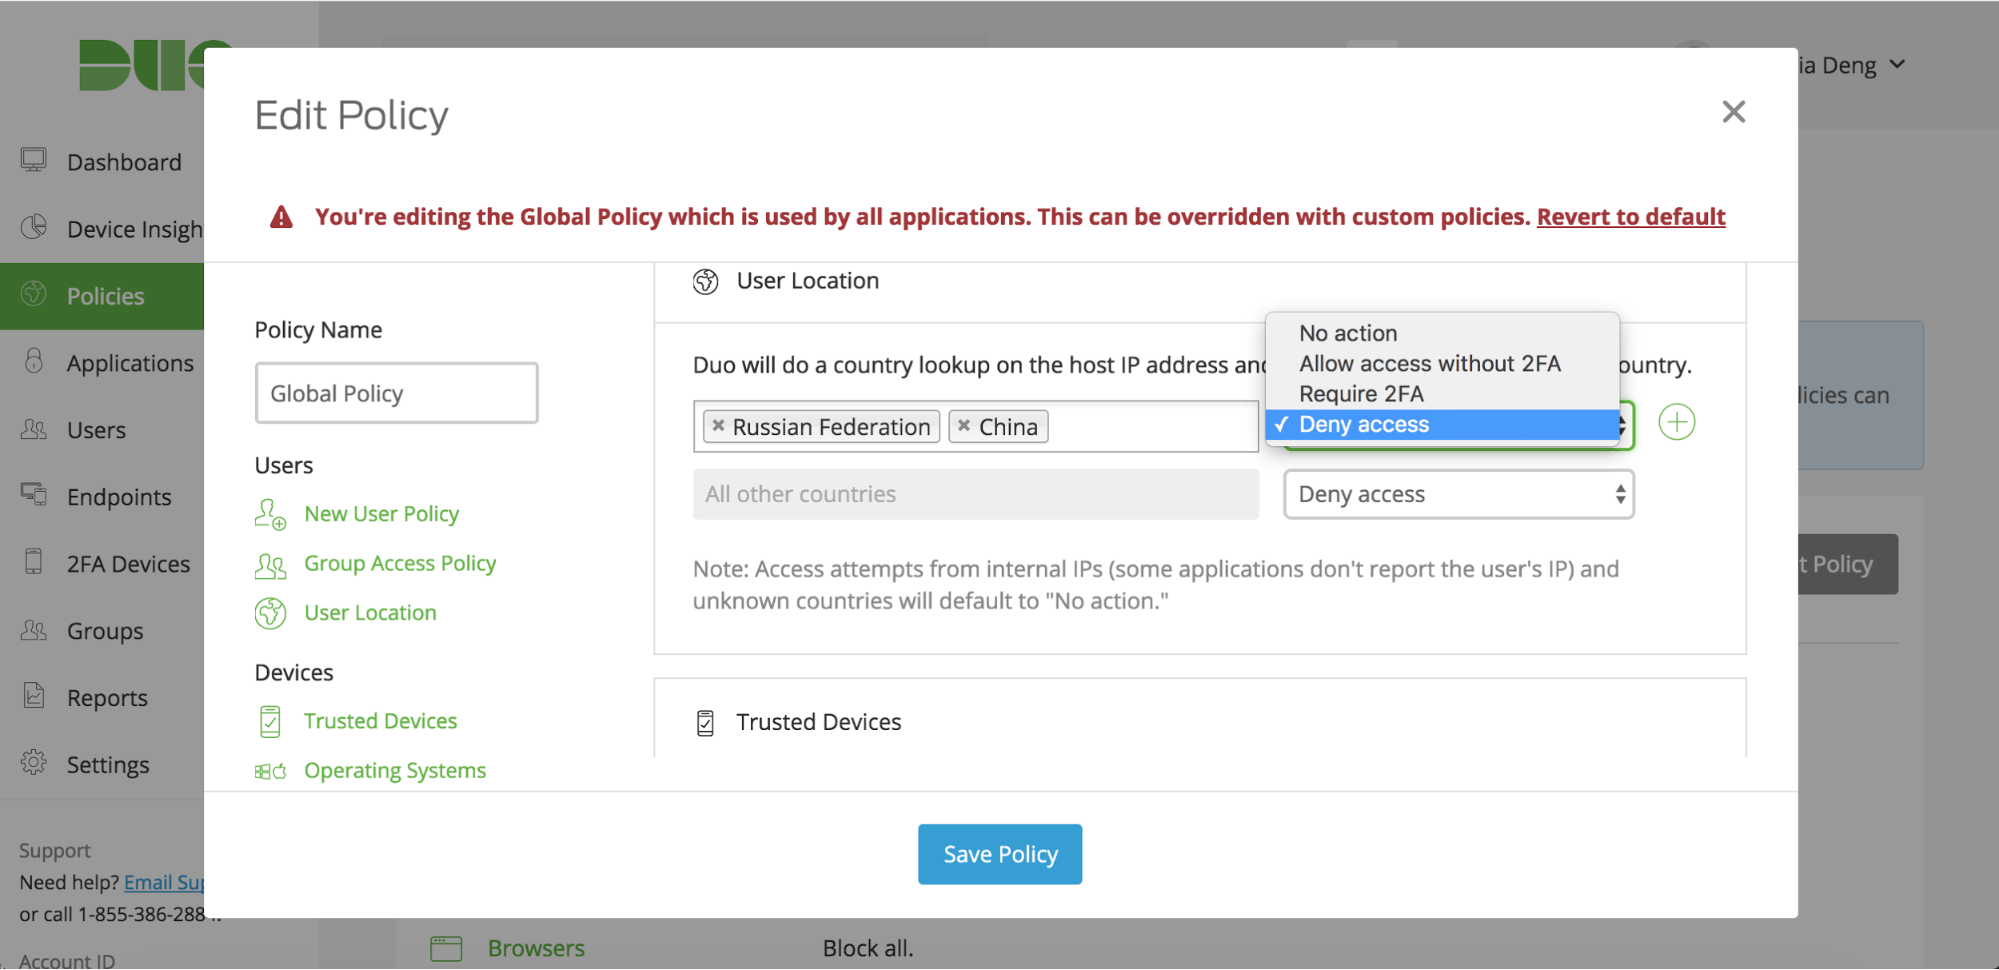 User Location Policy